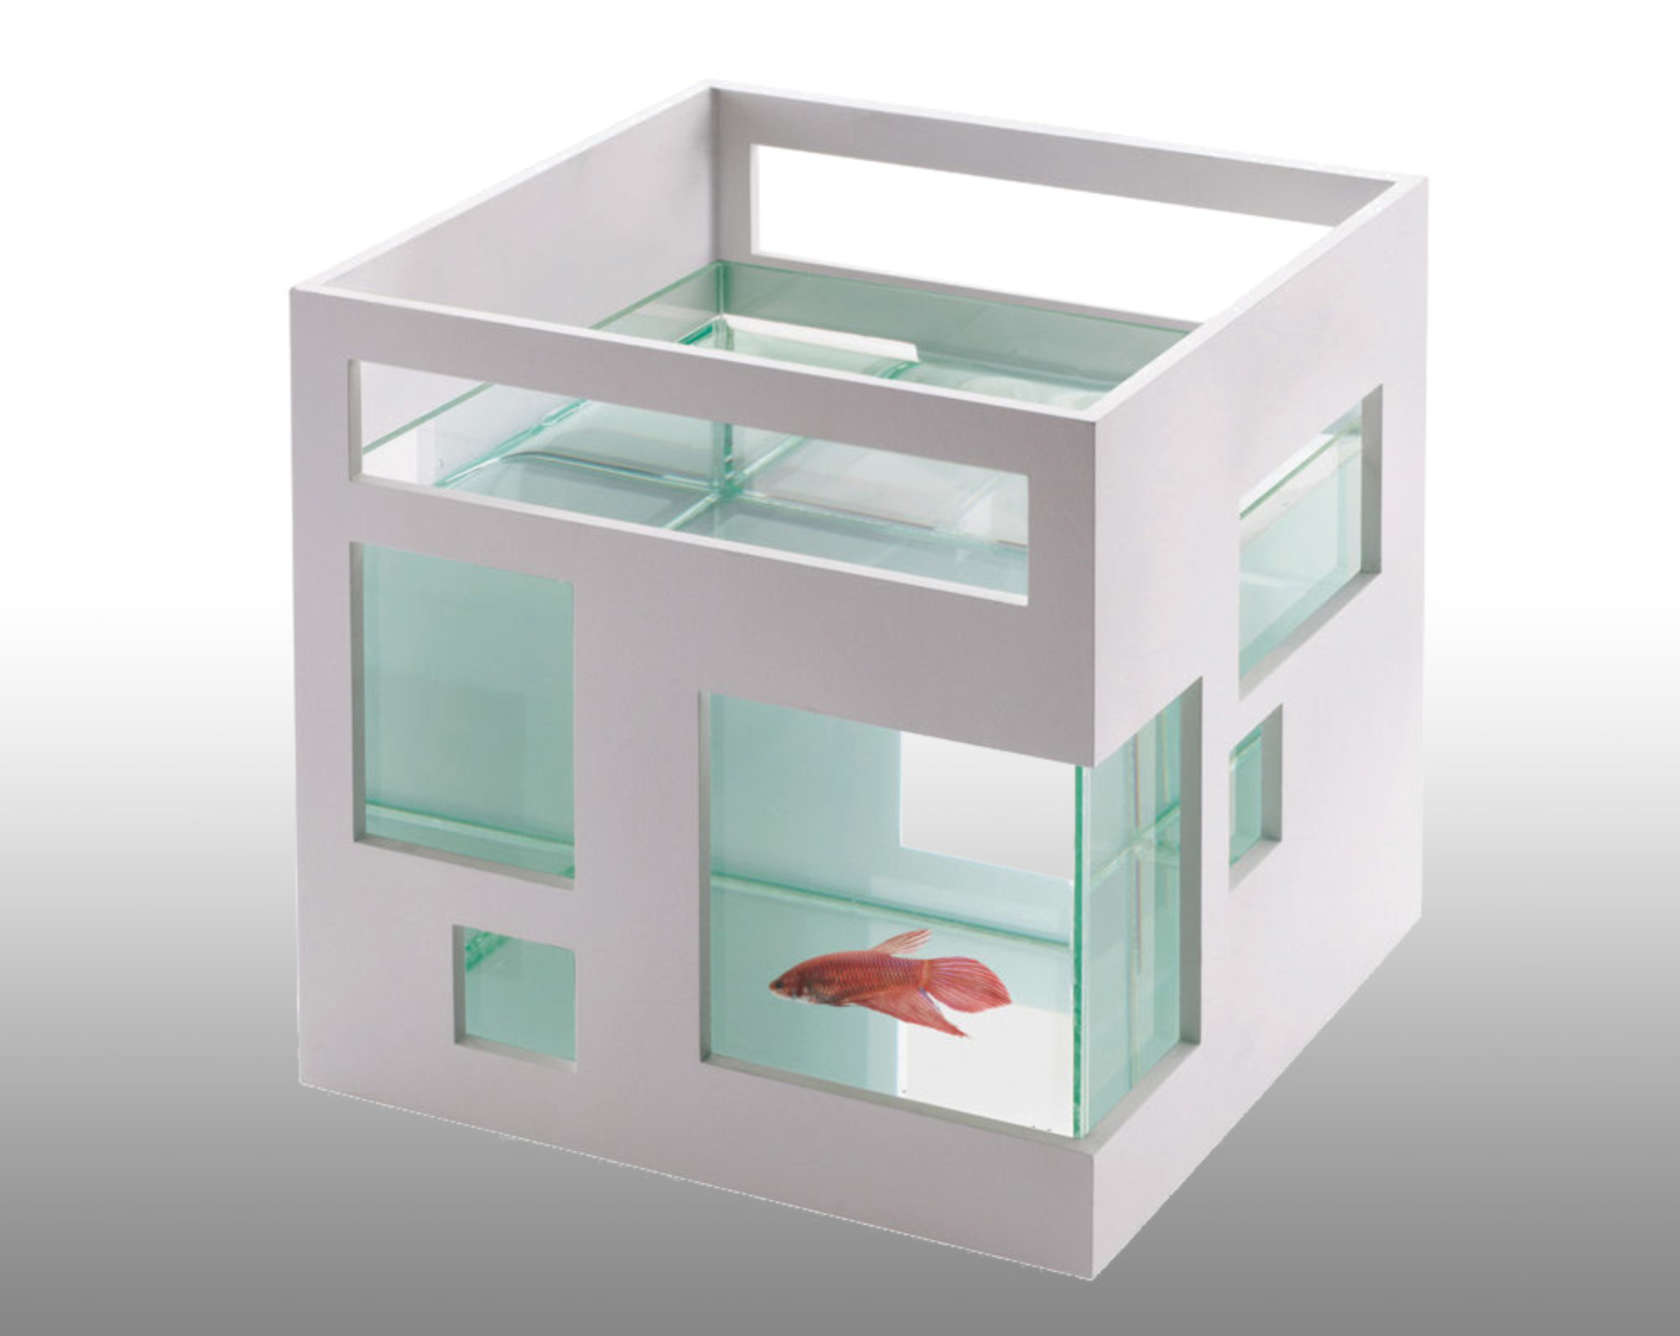 """Umbra Fish Hotel Fish Bowl  This fish bowl was modeled after a """"contemporary condominium,"""" with sleek white walls and asymmetrical windows. Image SkyMall"""